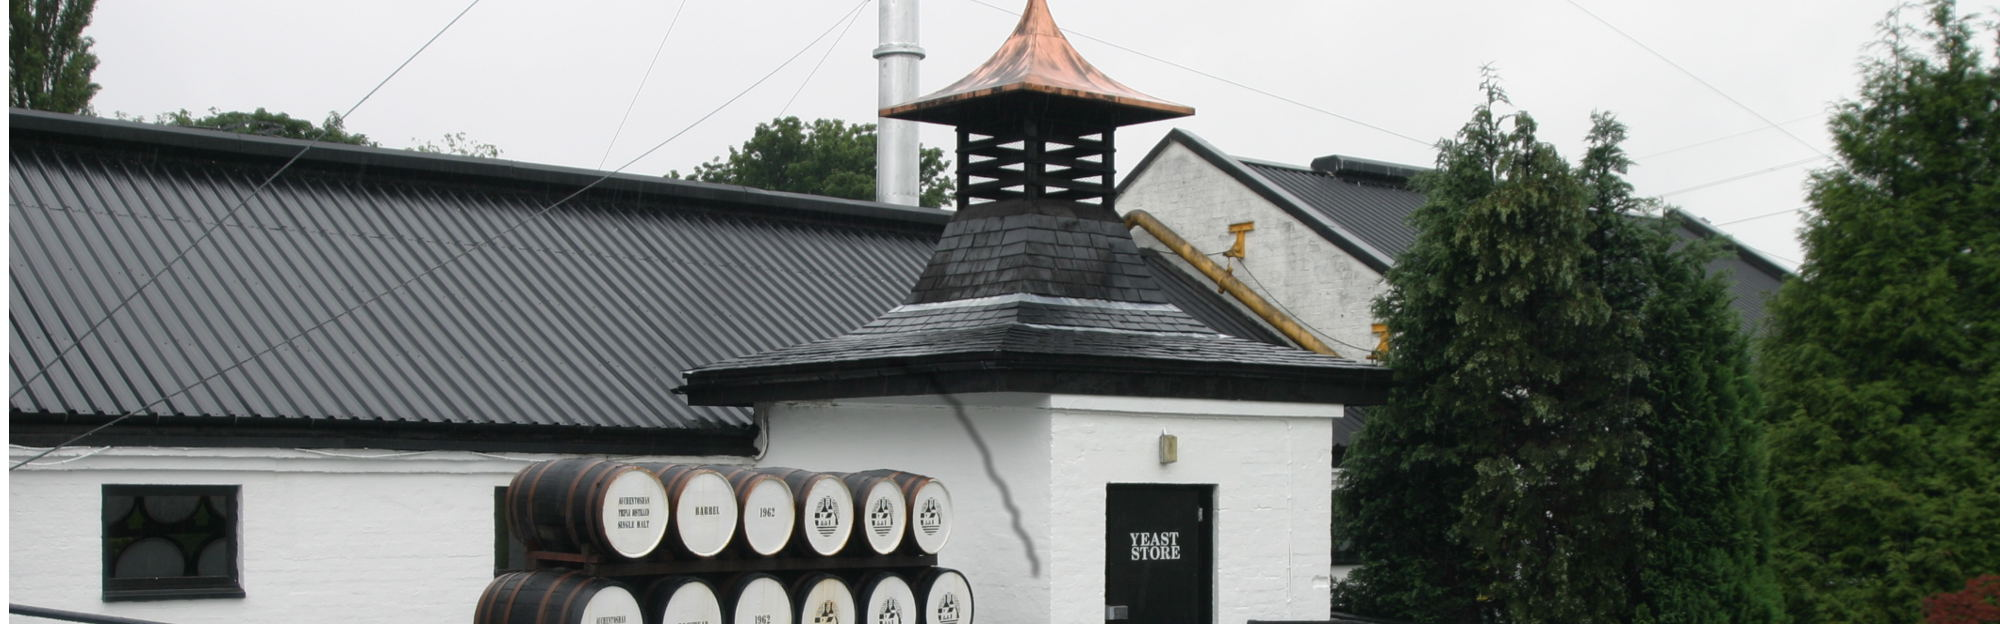 The Auchentoshan distillery with the barrels in front of the building with the kiln